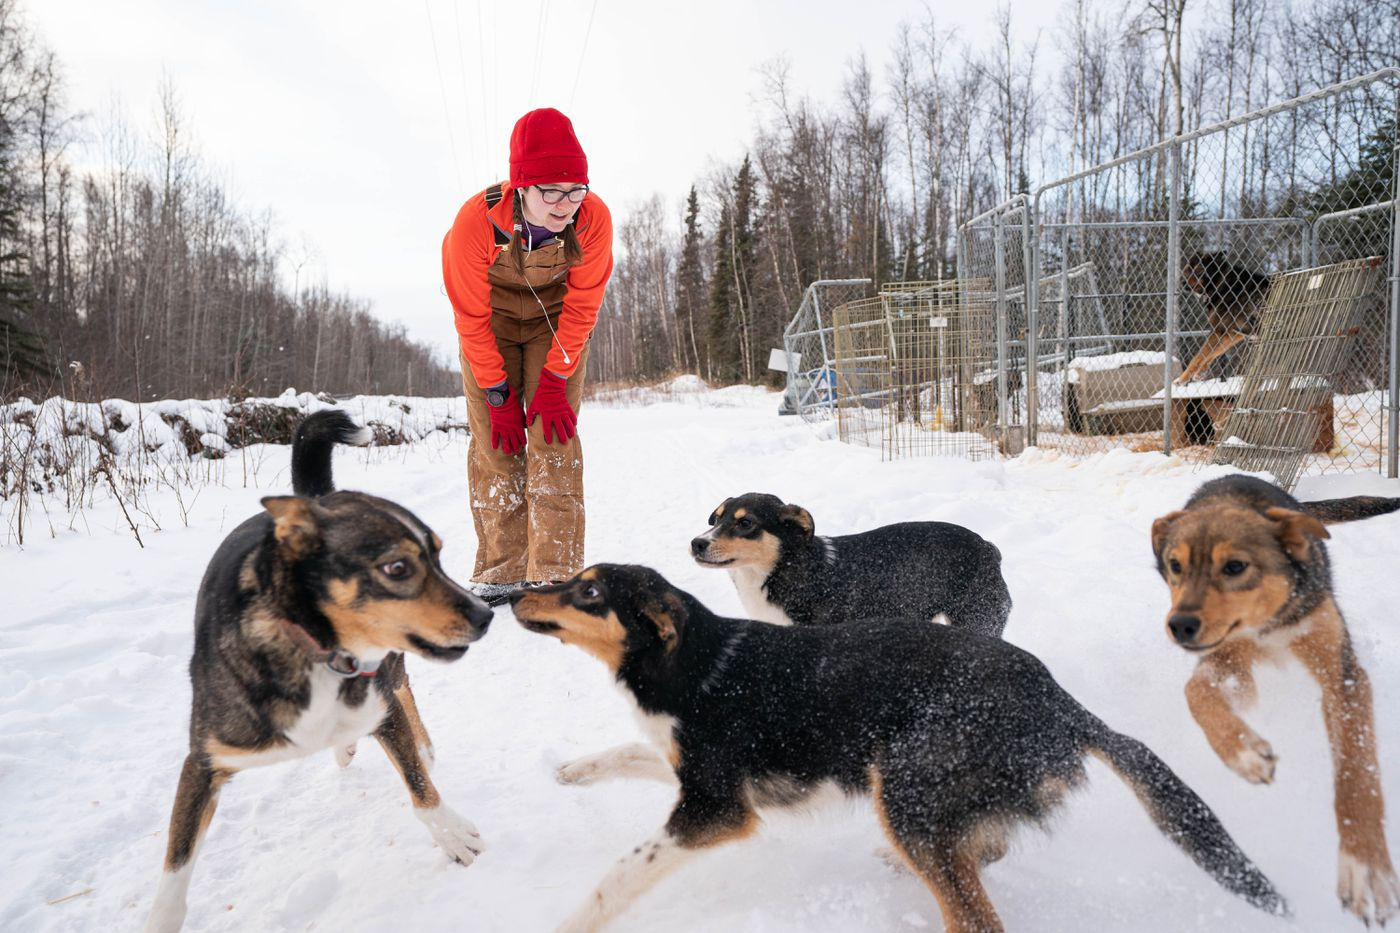 Mapes watches as, from left, Sarah Jane, Moana, Mulan and Rapunzel chase each other in the snow. (Loren Holmes / ADN)